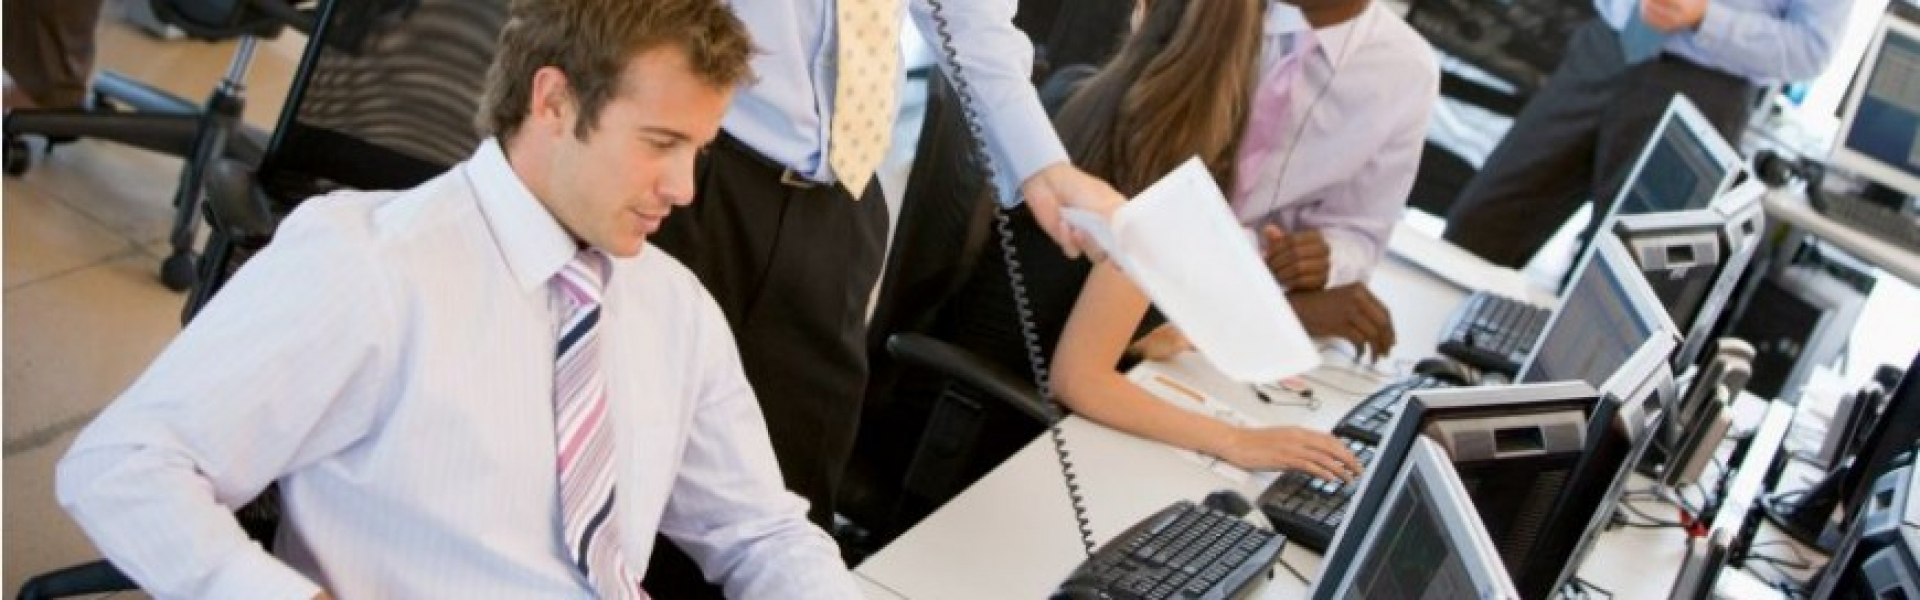 Using technology to boost staff efficiency